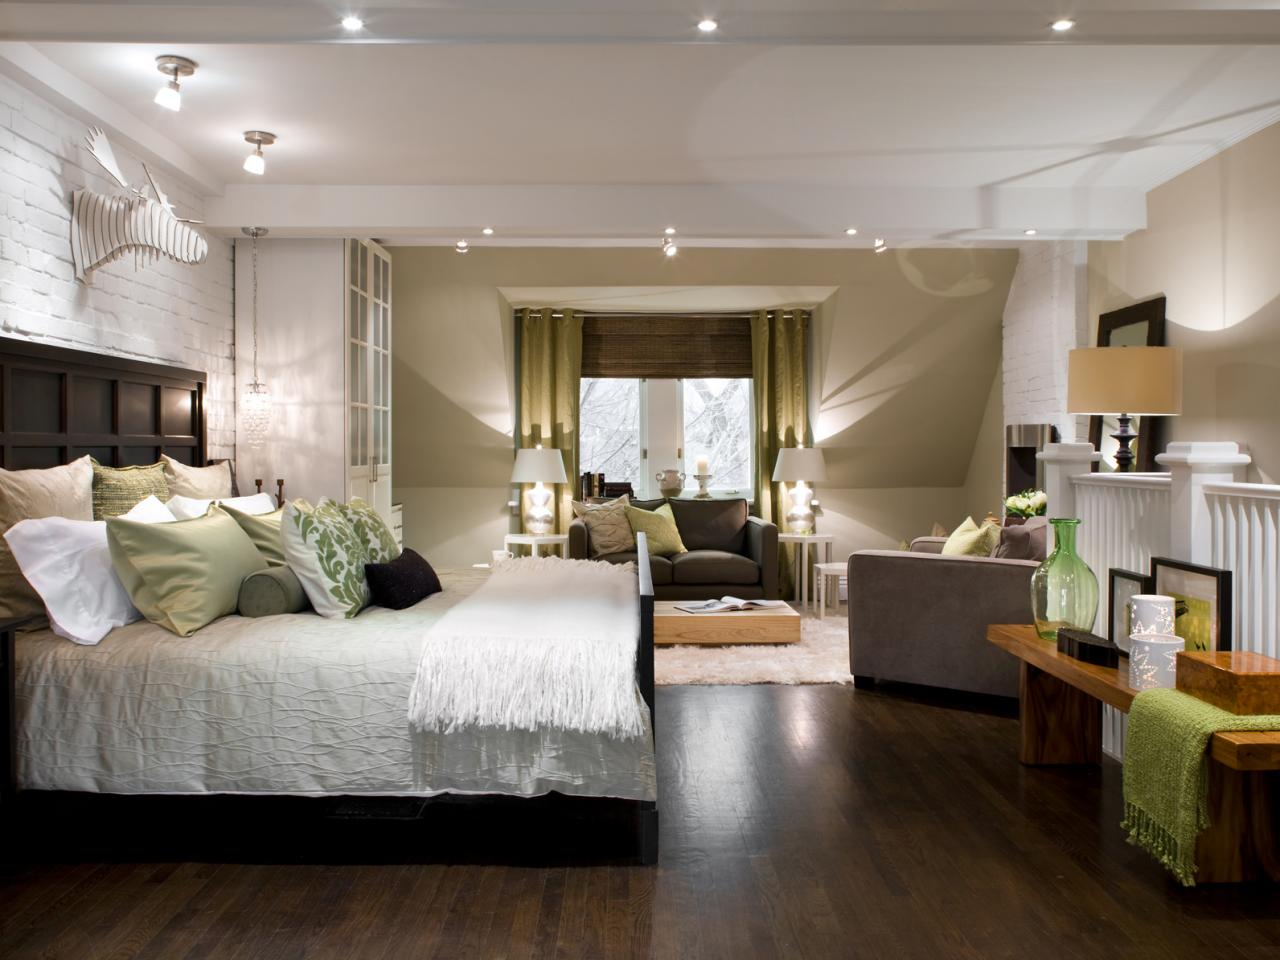 11 Bedroom Decorating Ideas: How To Decorate A Bedroom